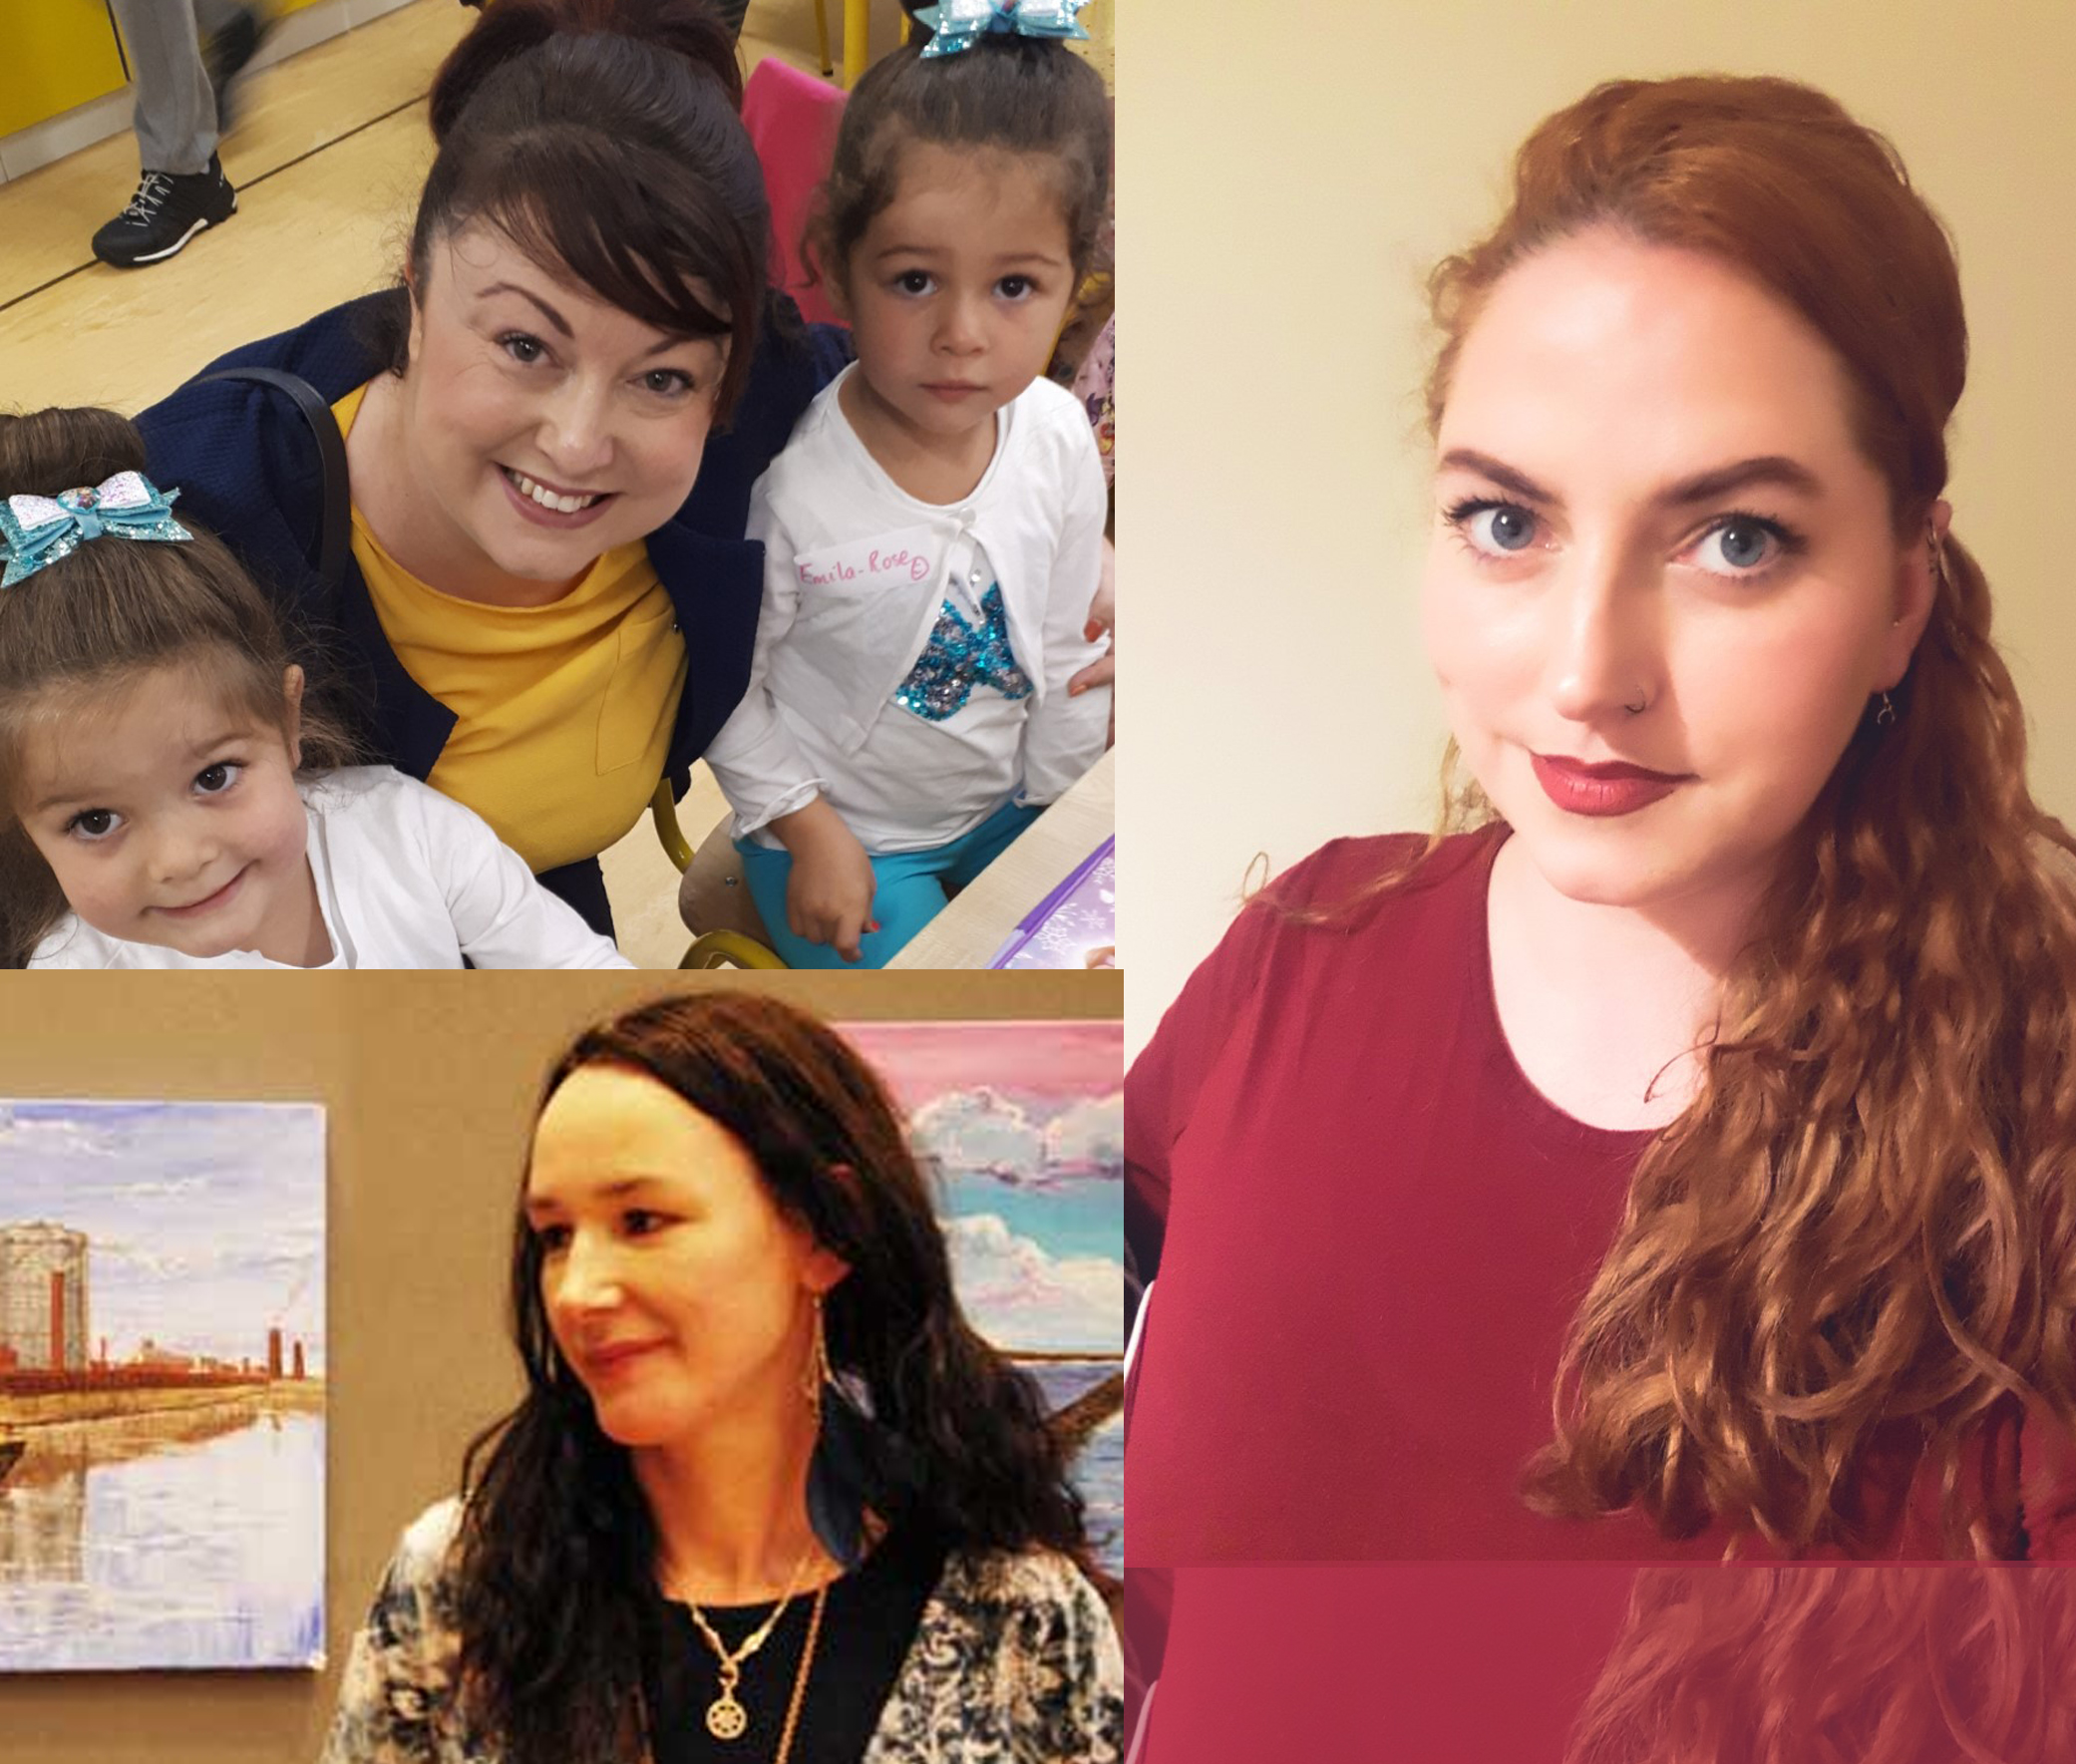 Michelle Heffernan speaks to three women with disabilities, who must constantly endure hardship over Ireland's response to illness.